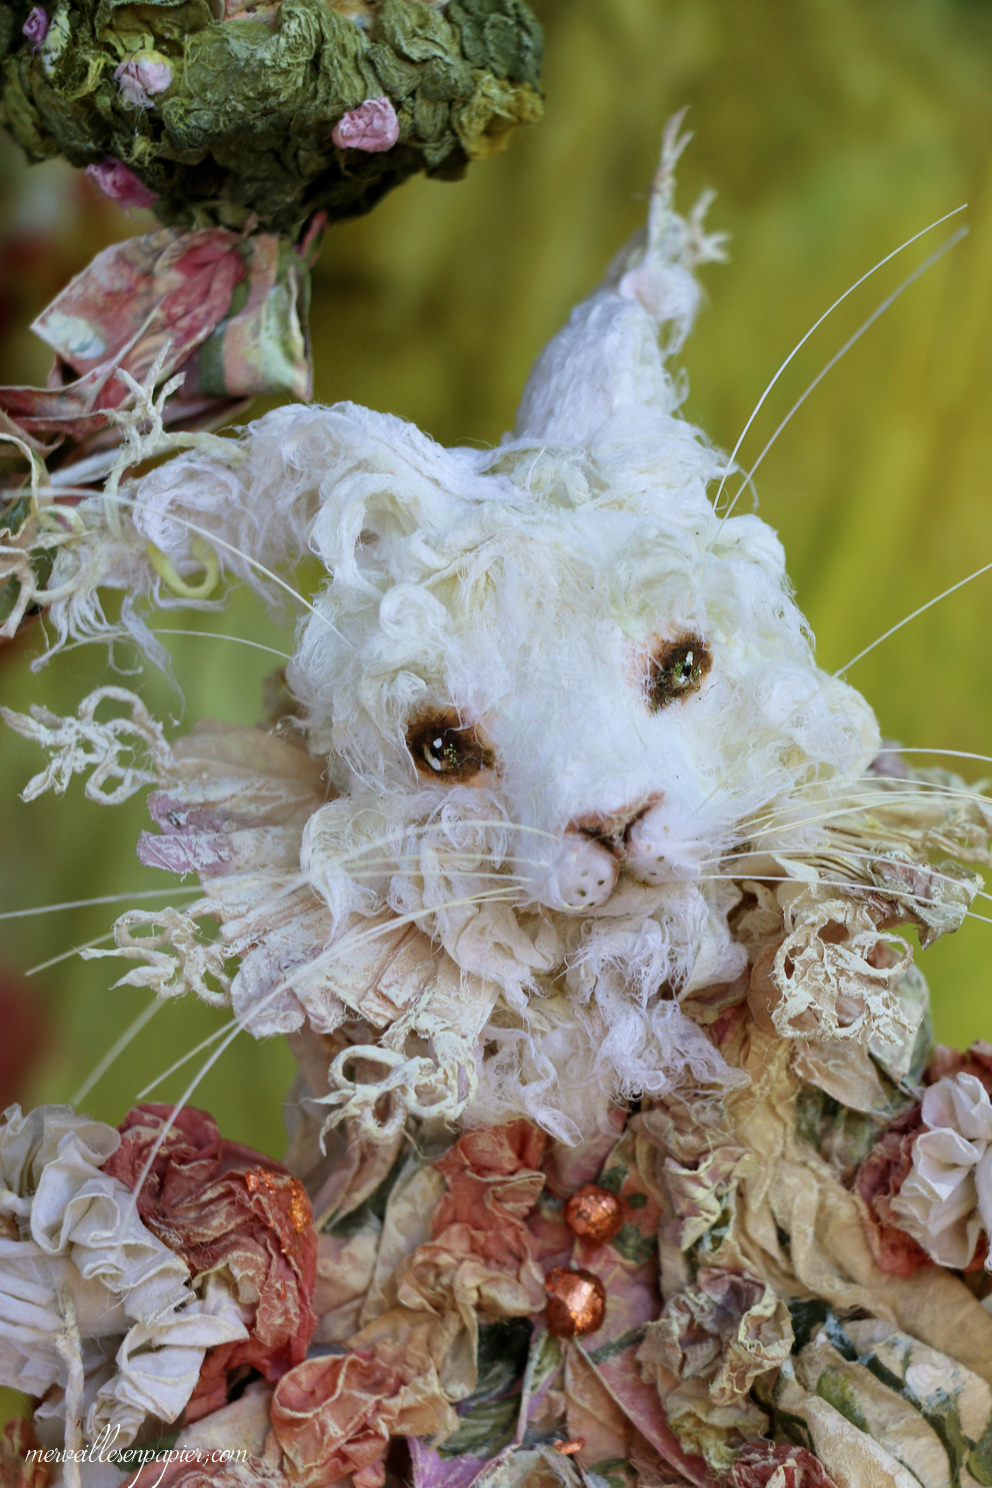 white-rabit-child-detail-11.jpg